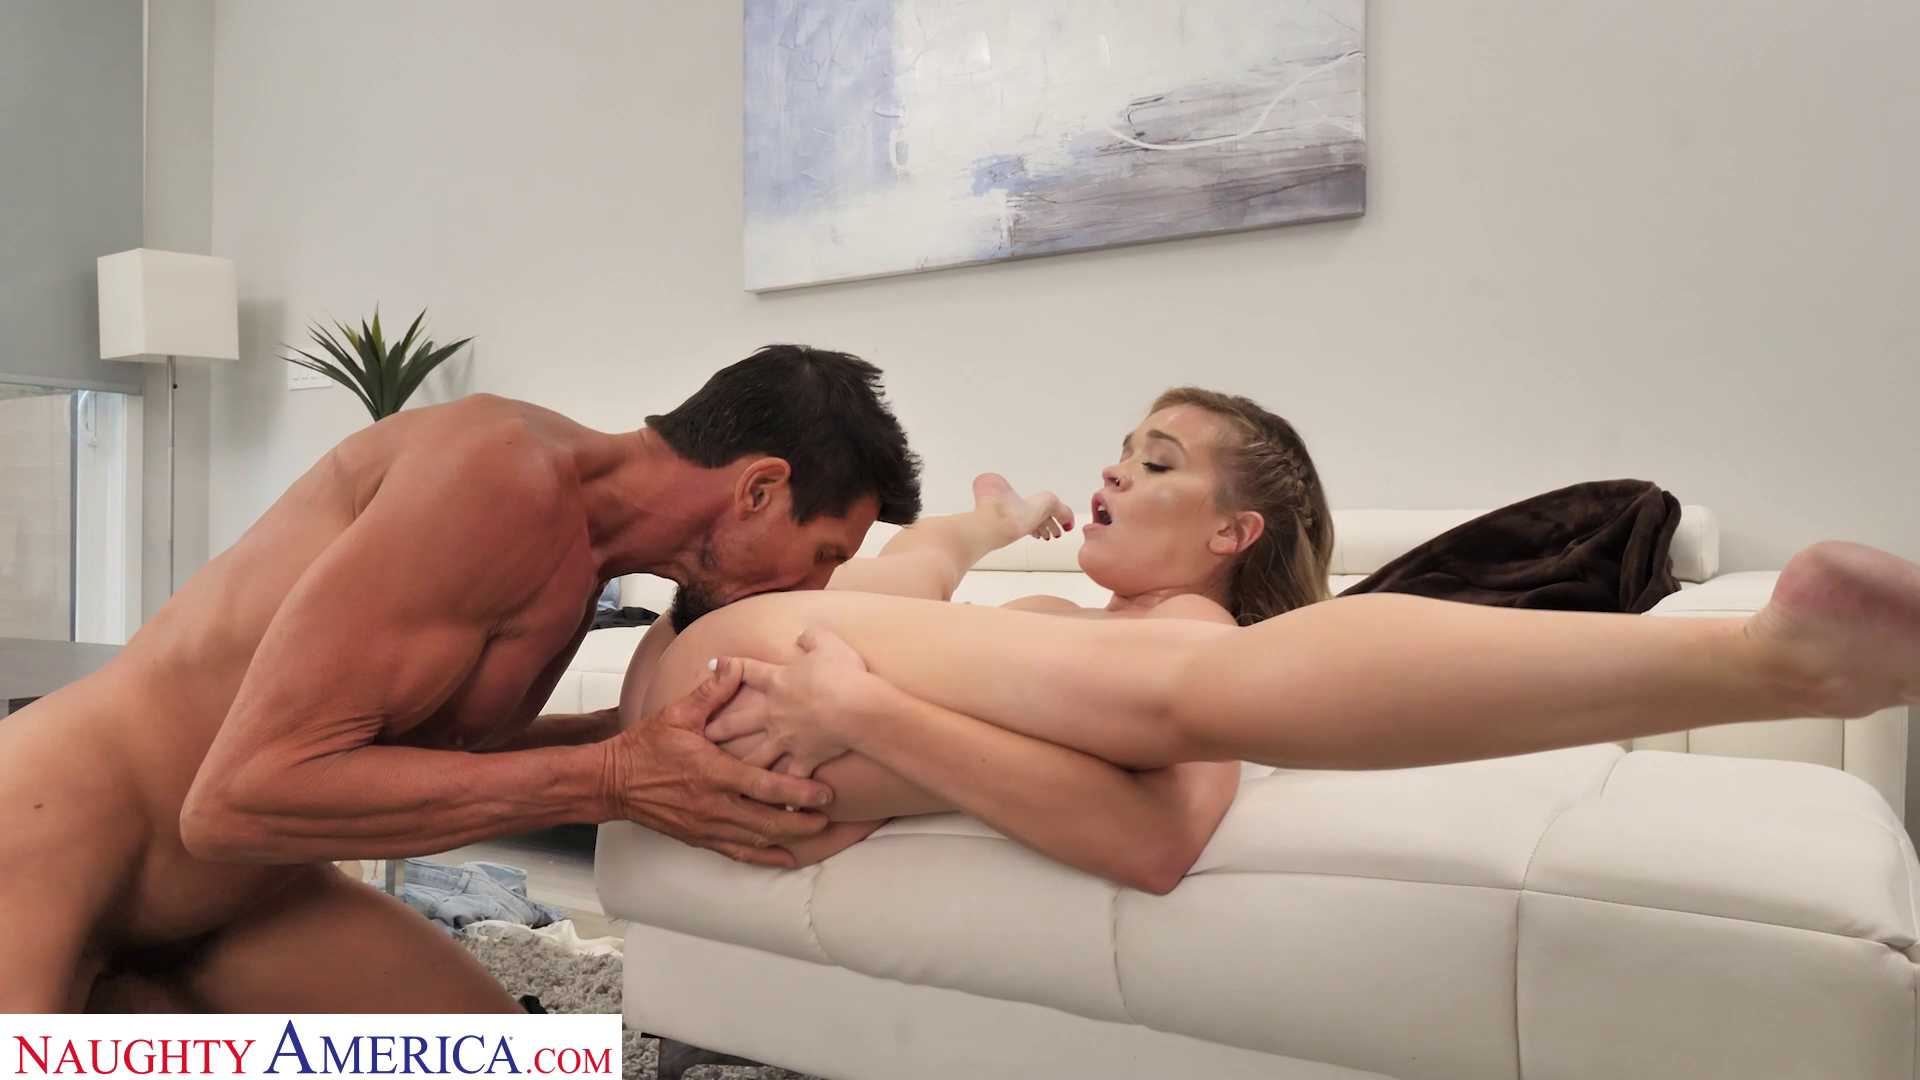 Katie Kush Bounces Ass On Neighbor While His Wife Is Out